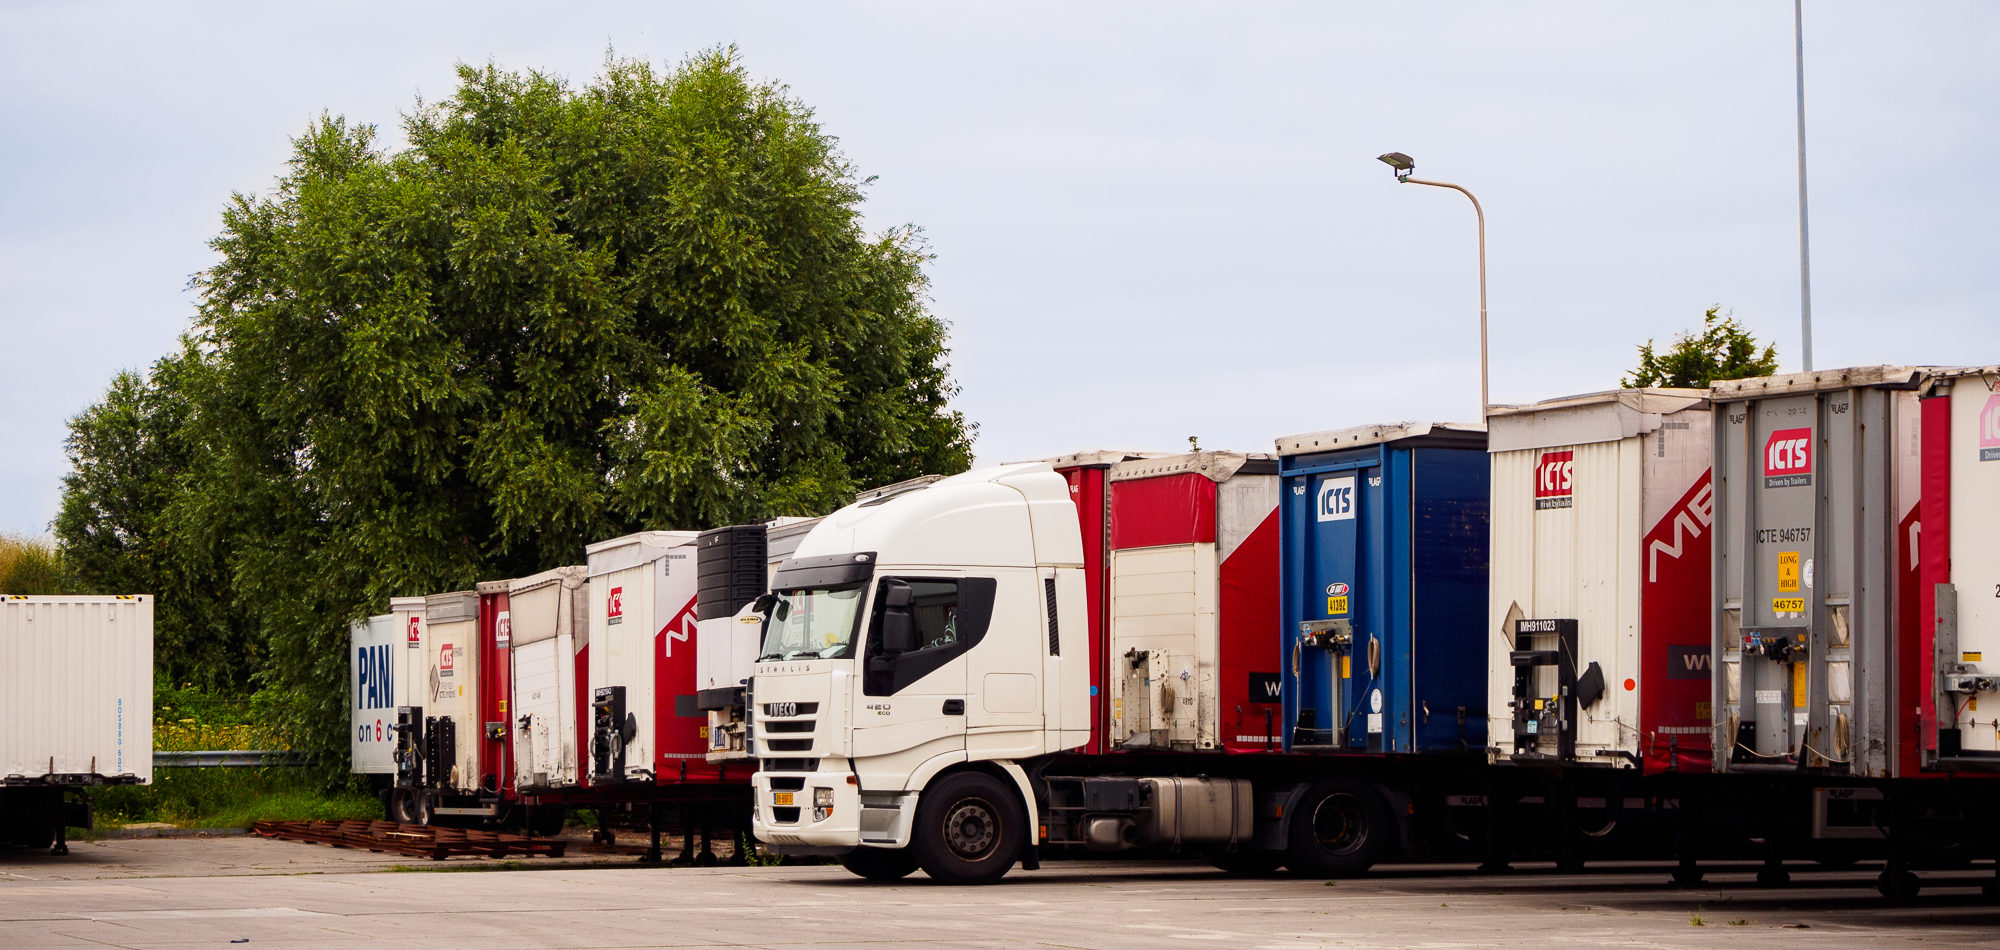 Truck and trailers in a fleet